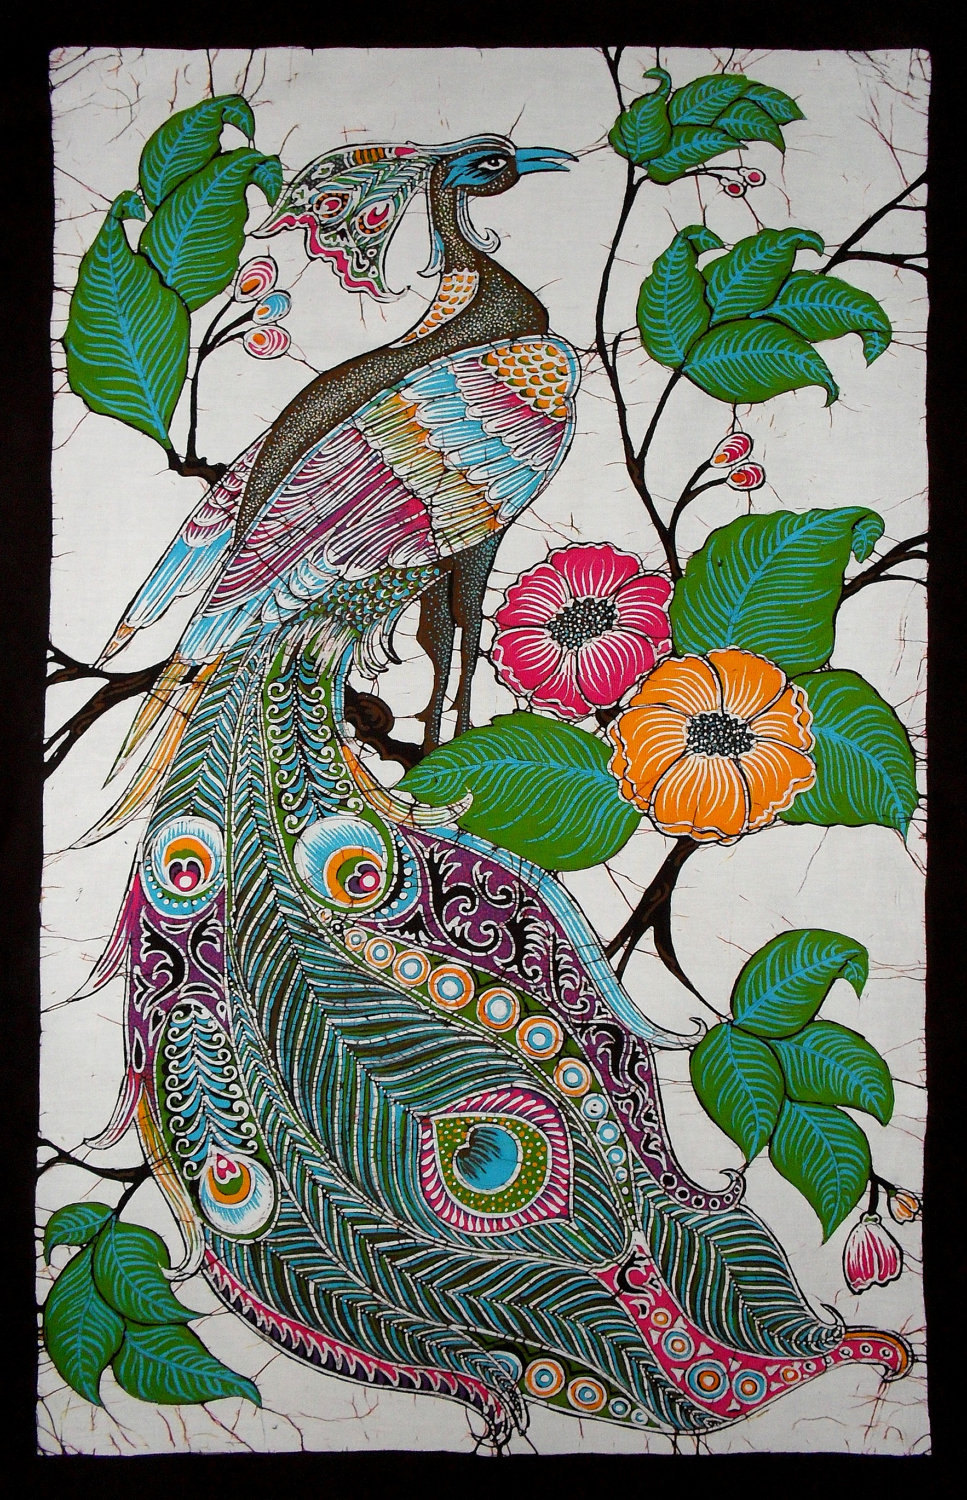 Hand Made Batik Wall Hanging Peacock On Tree Of Flowers 23